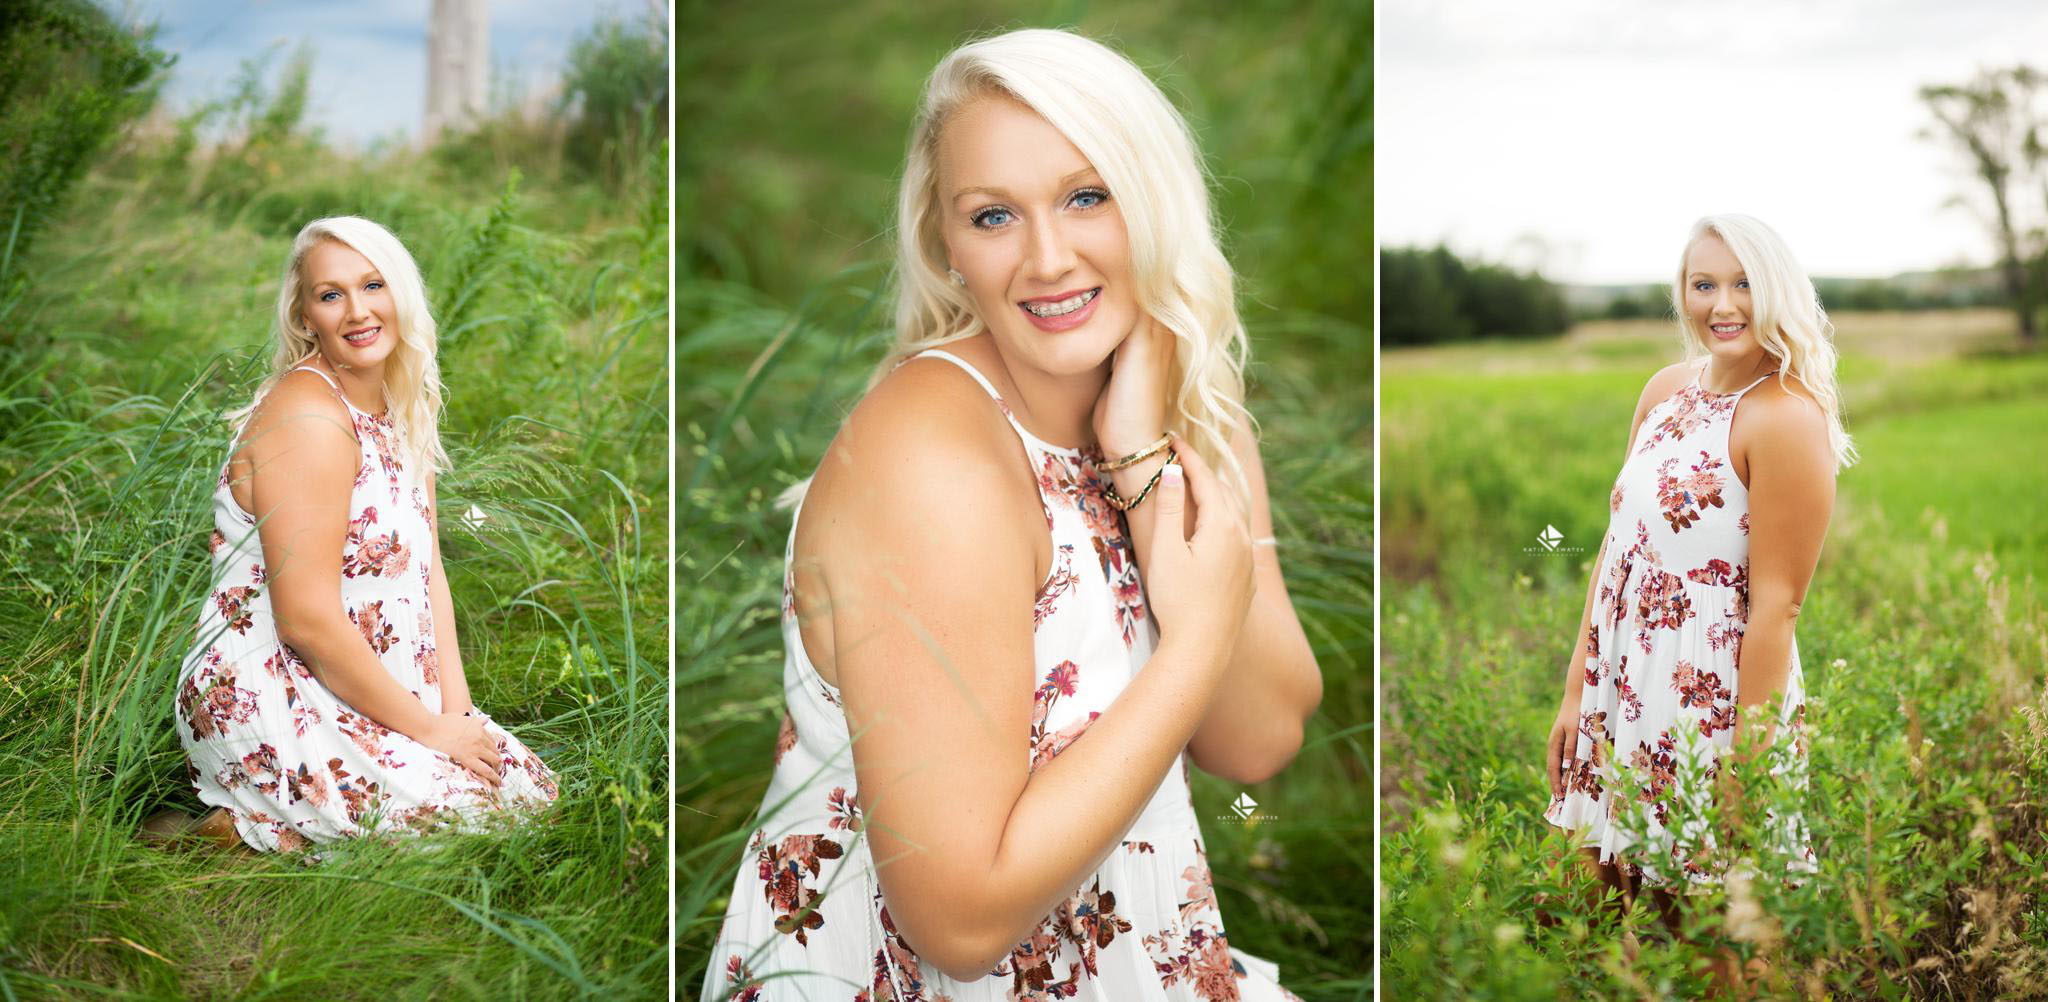 blonde senior girl in a white and red floral dress standing in in a field of very green grass